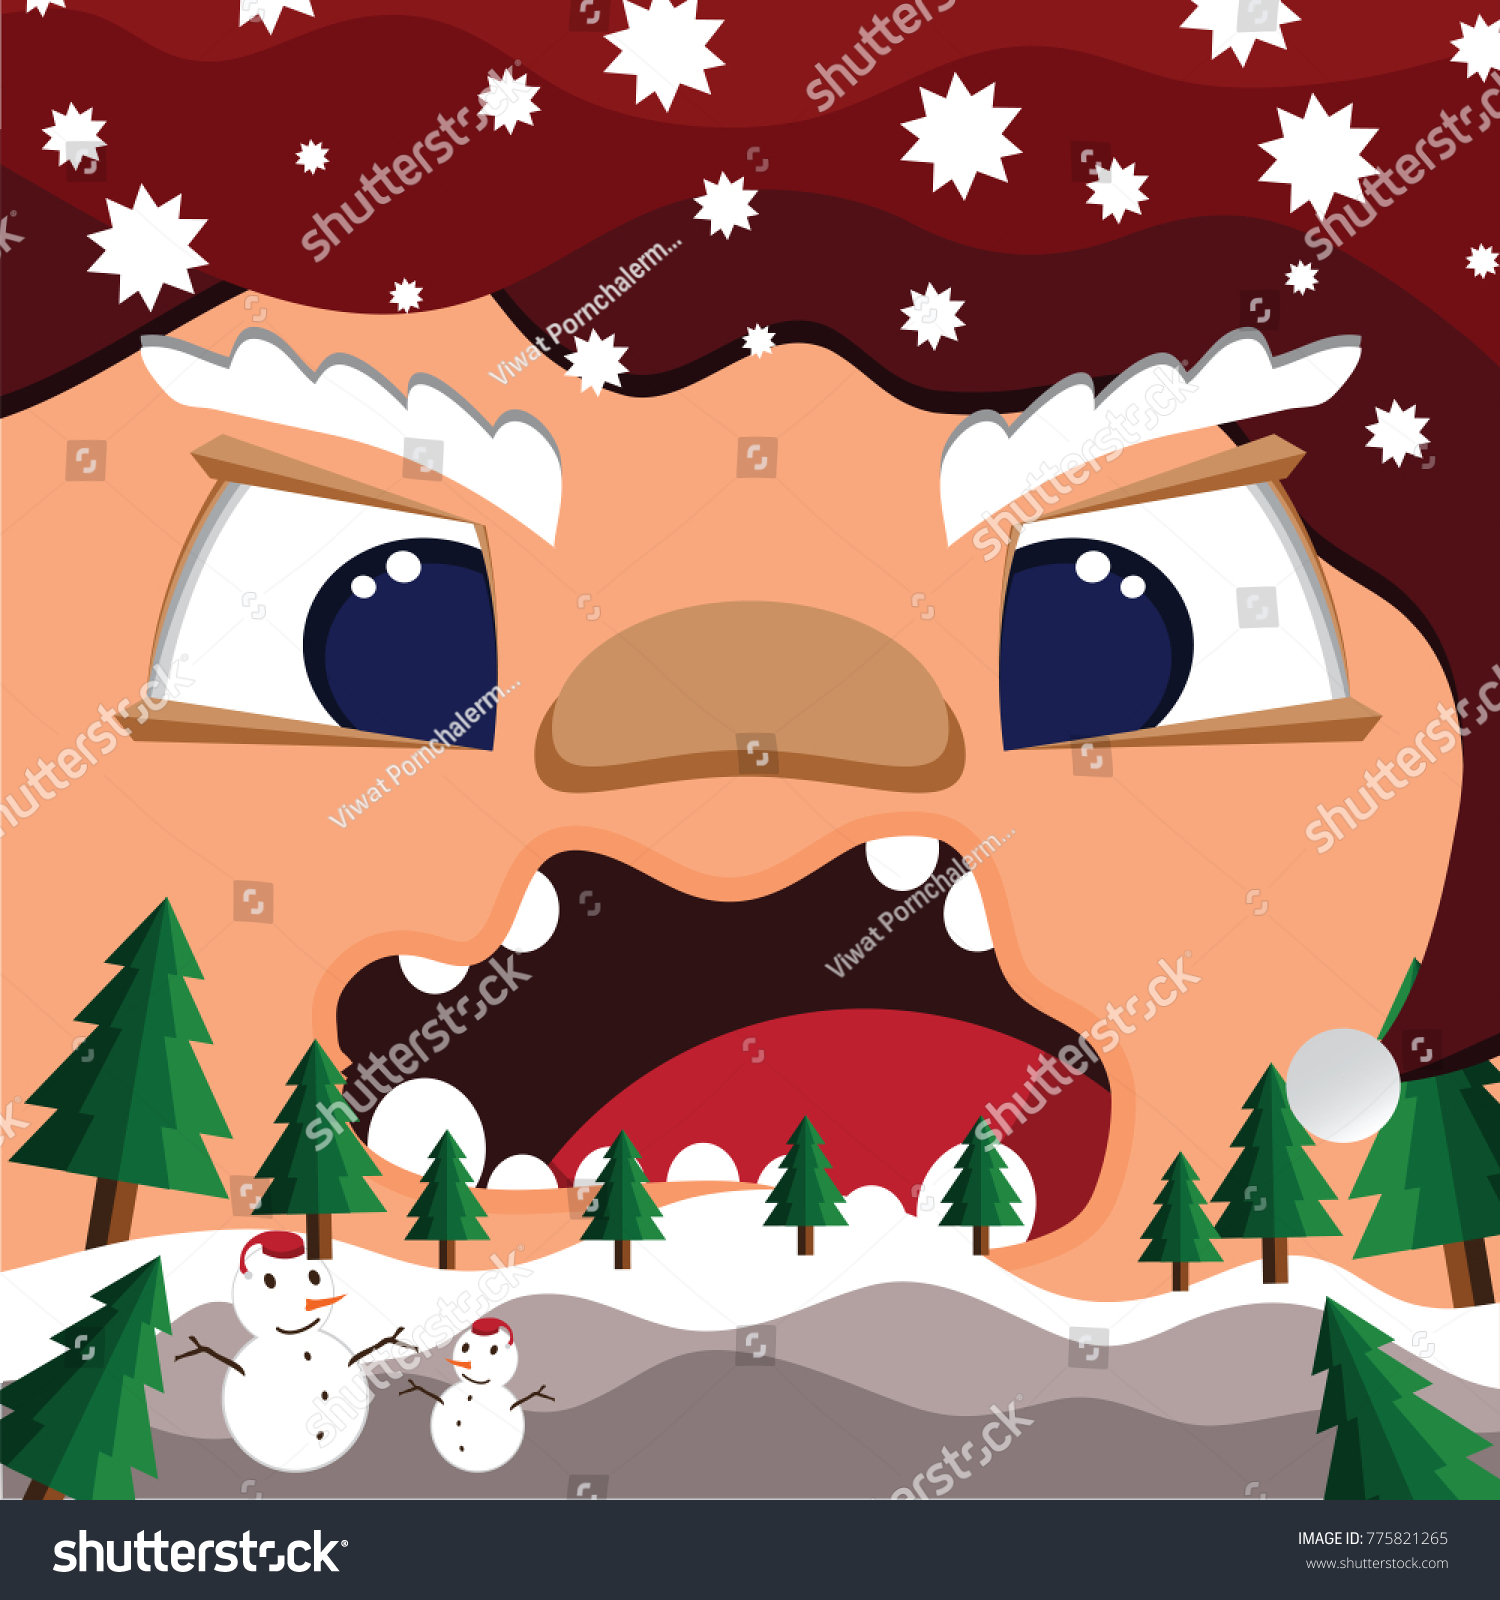 Santa claus back wallpaper face